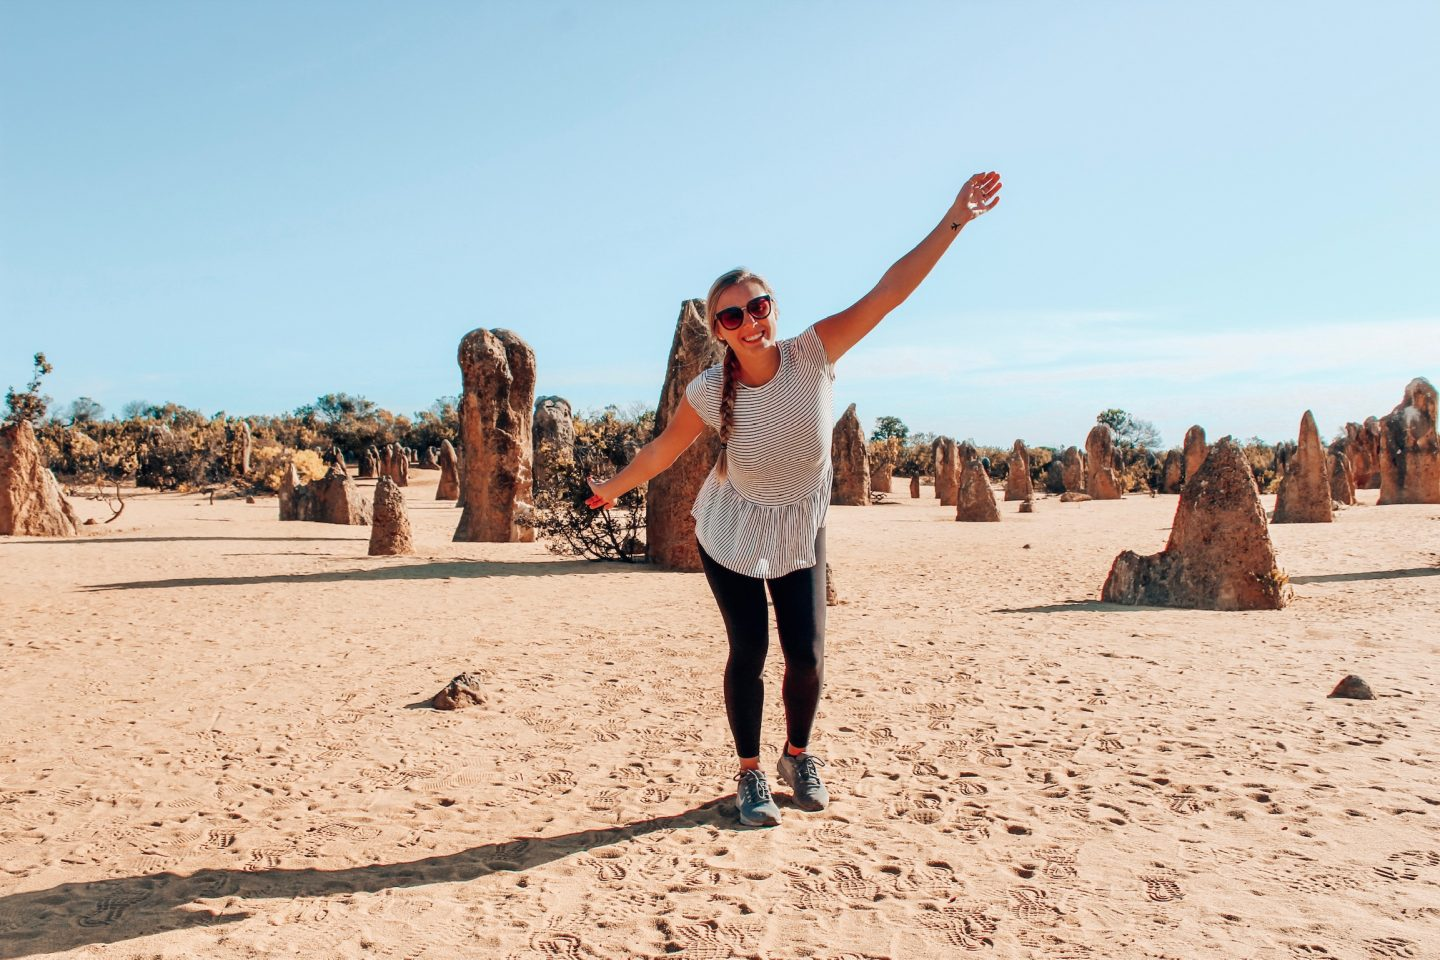 Posing in the Pinnacles Desert in Western Australia!